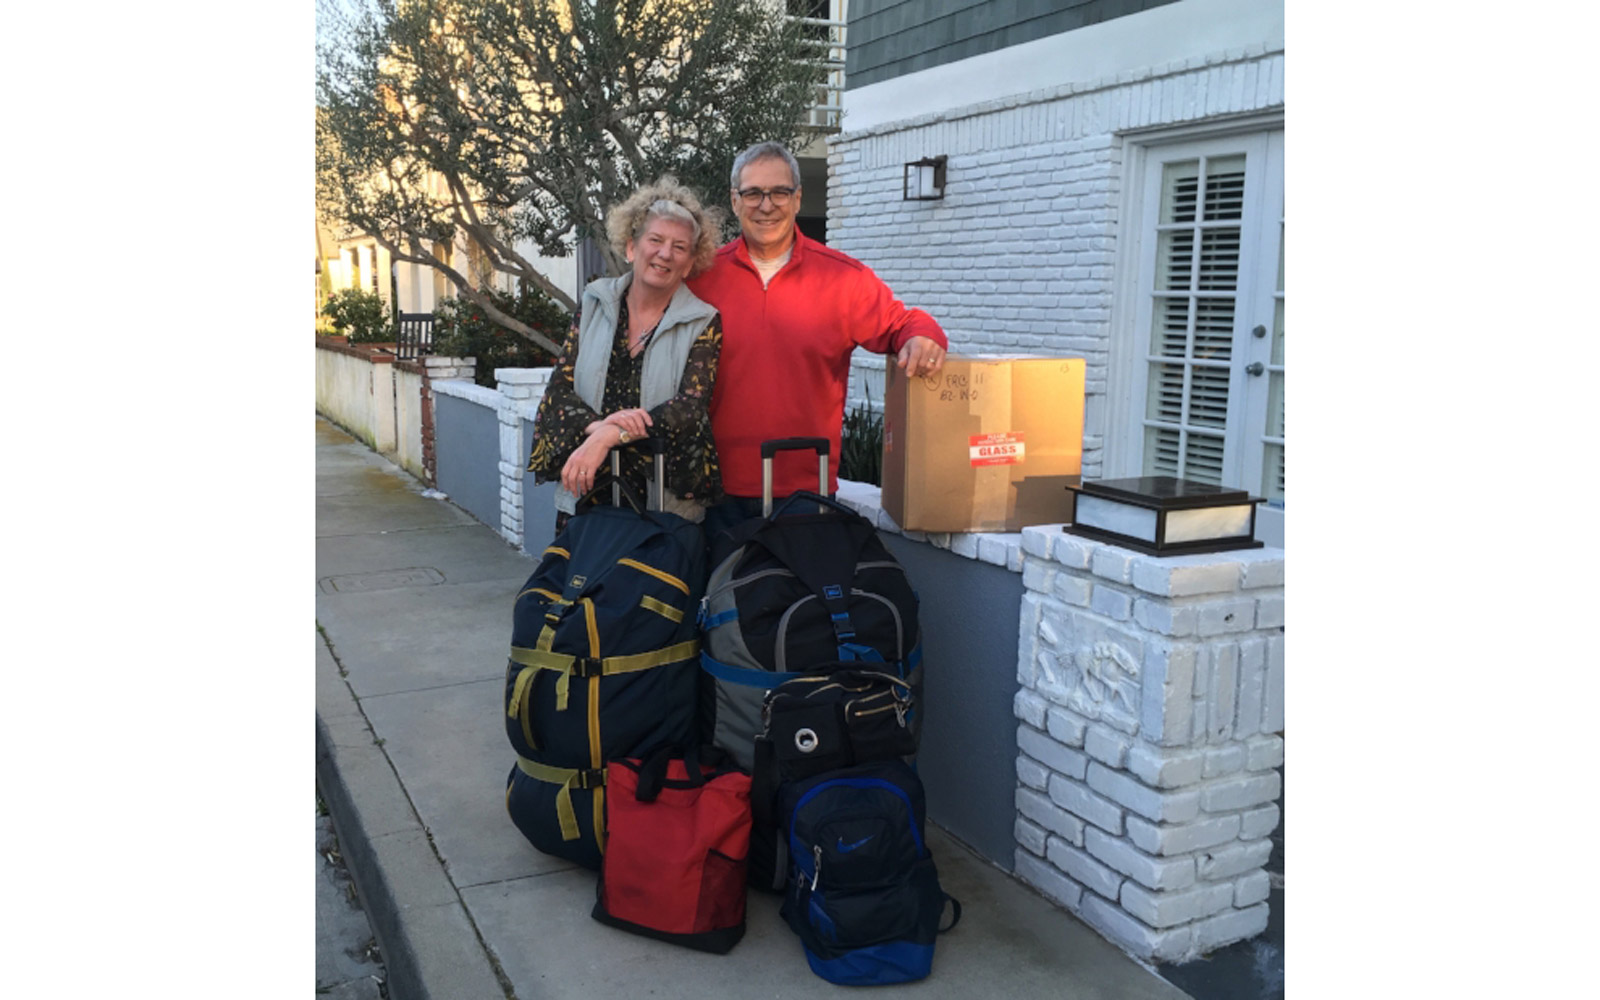 Michael and Debbie Campbell with luggage